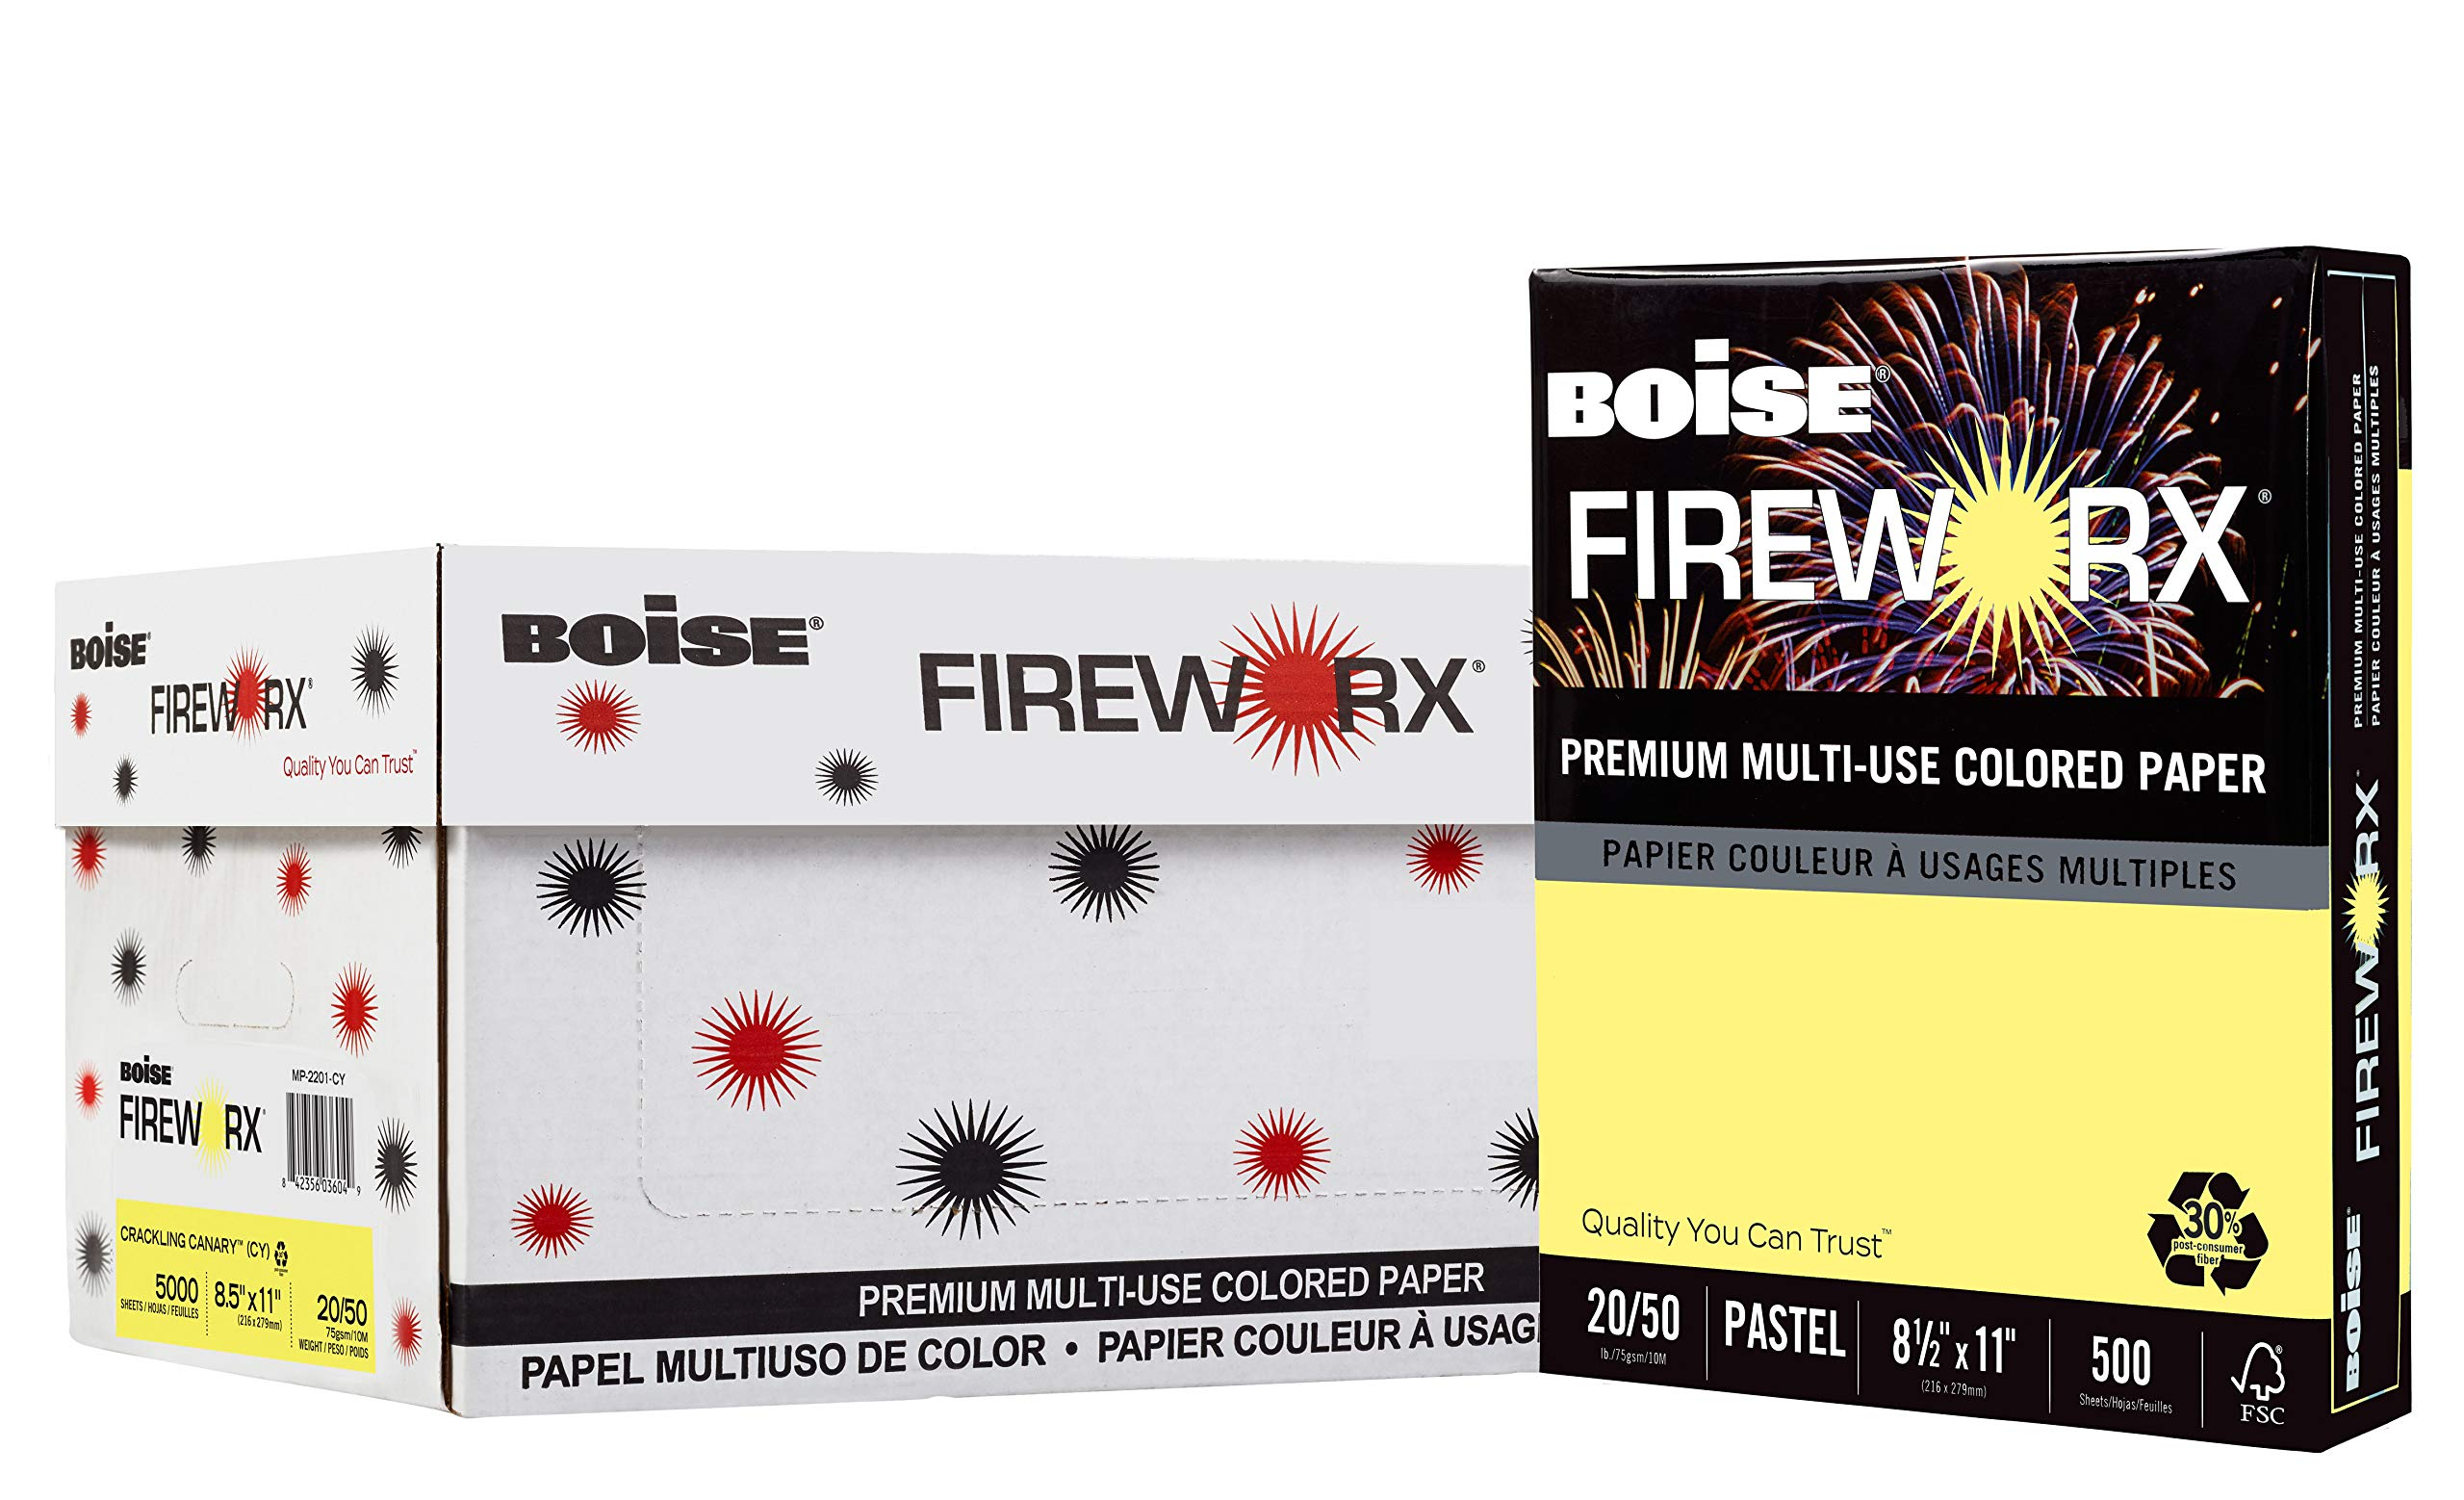 BOISE FIREWORX Premium Multi-Use Colored Paper, 8.5 x 11, Crackling Canary Yellow, 20 lb, 10 ream carton (5,000 Sheets) by Boise Paper